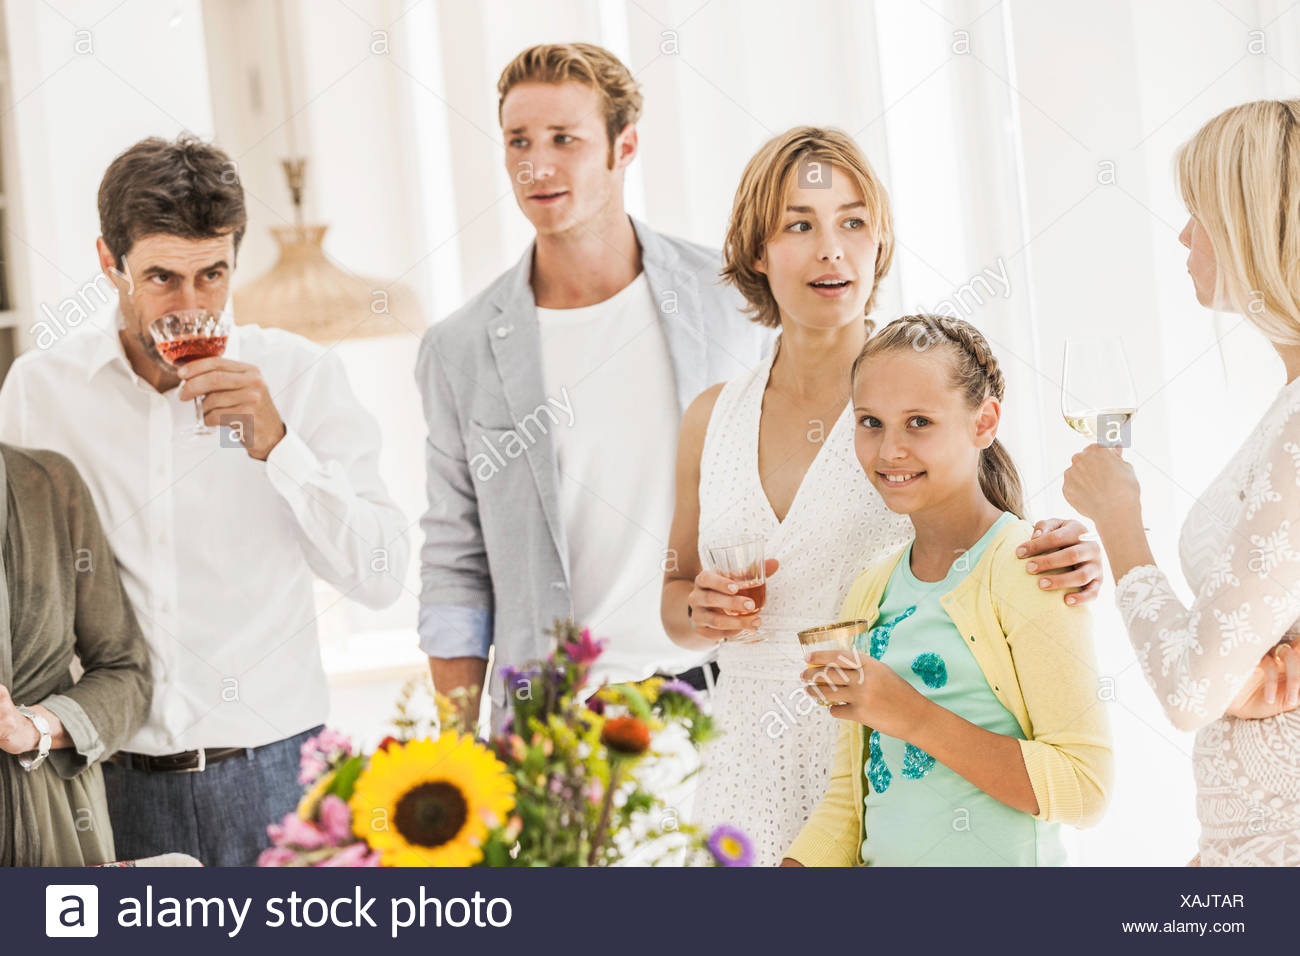 Family drinking wine at birthday party - Stock Image